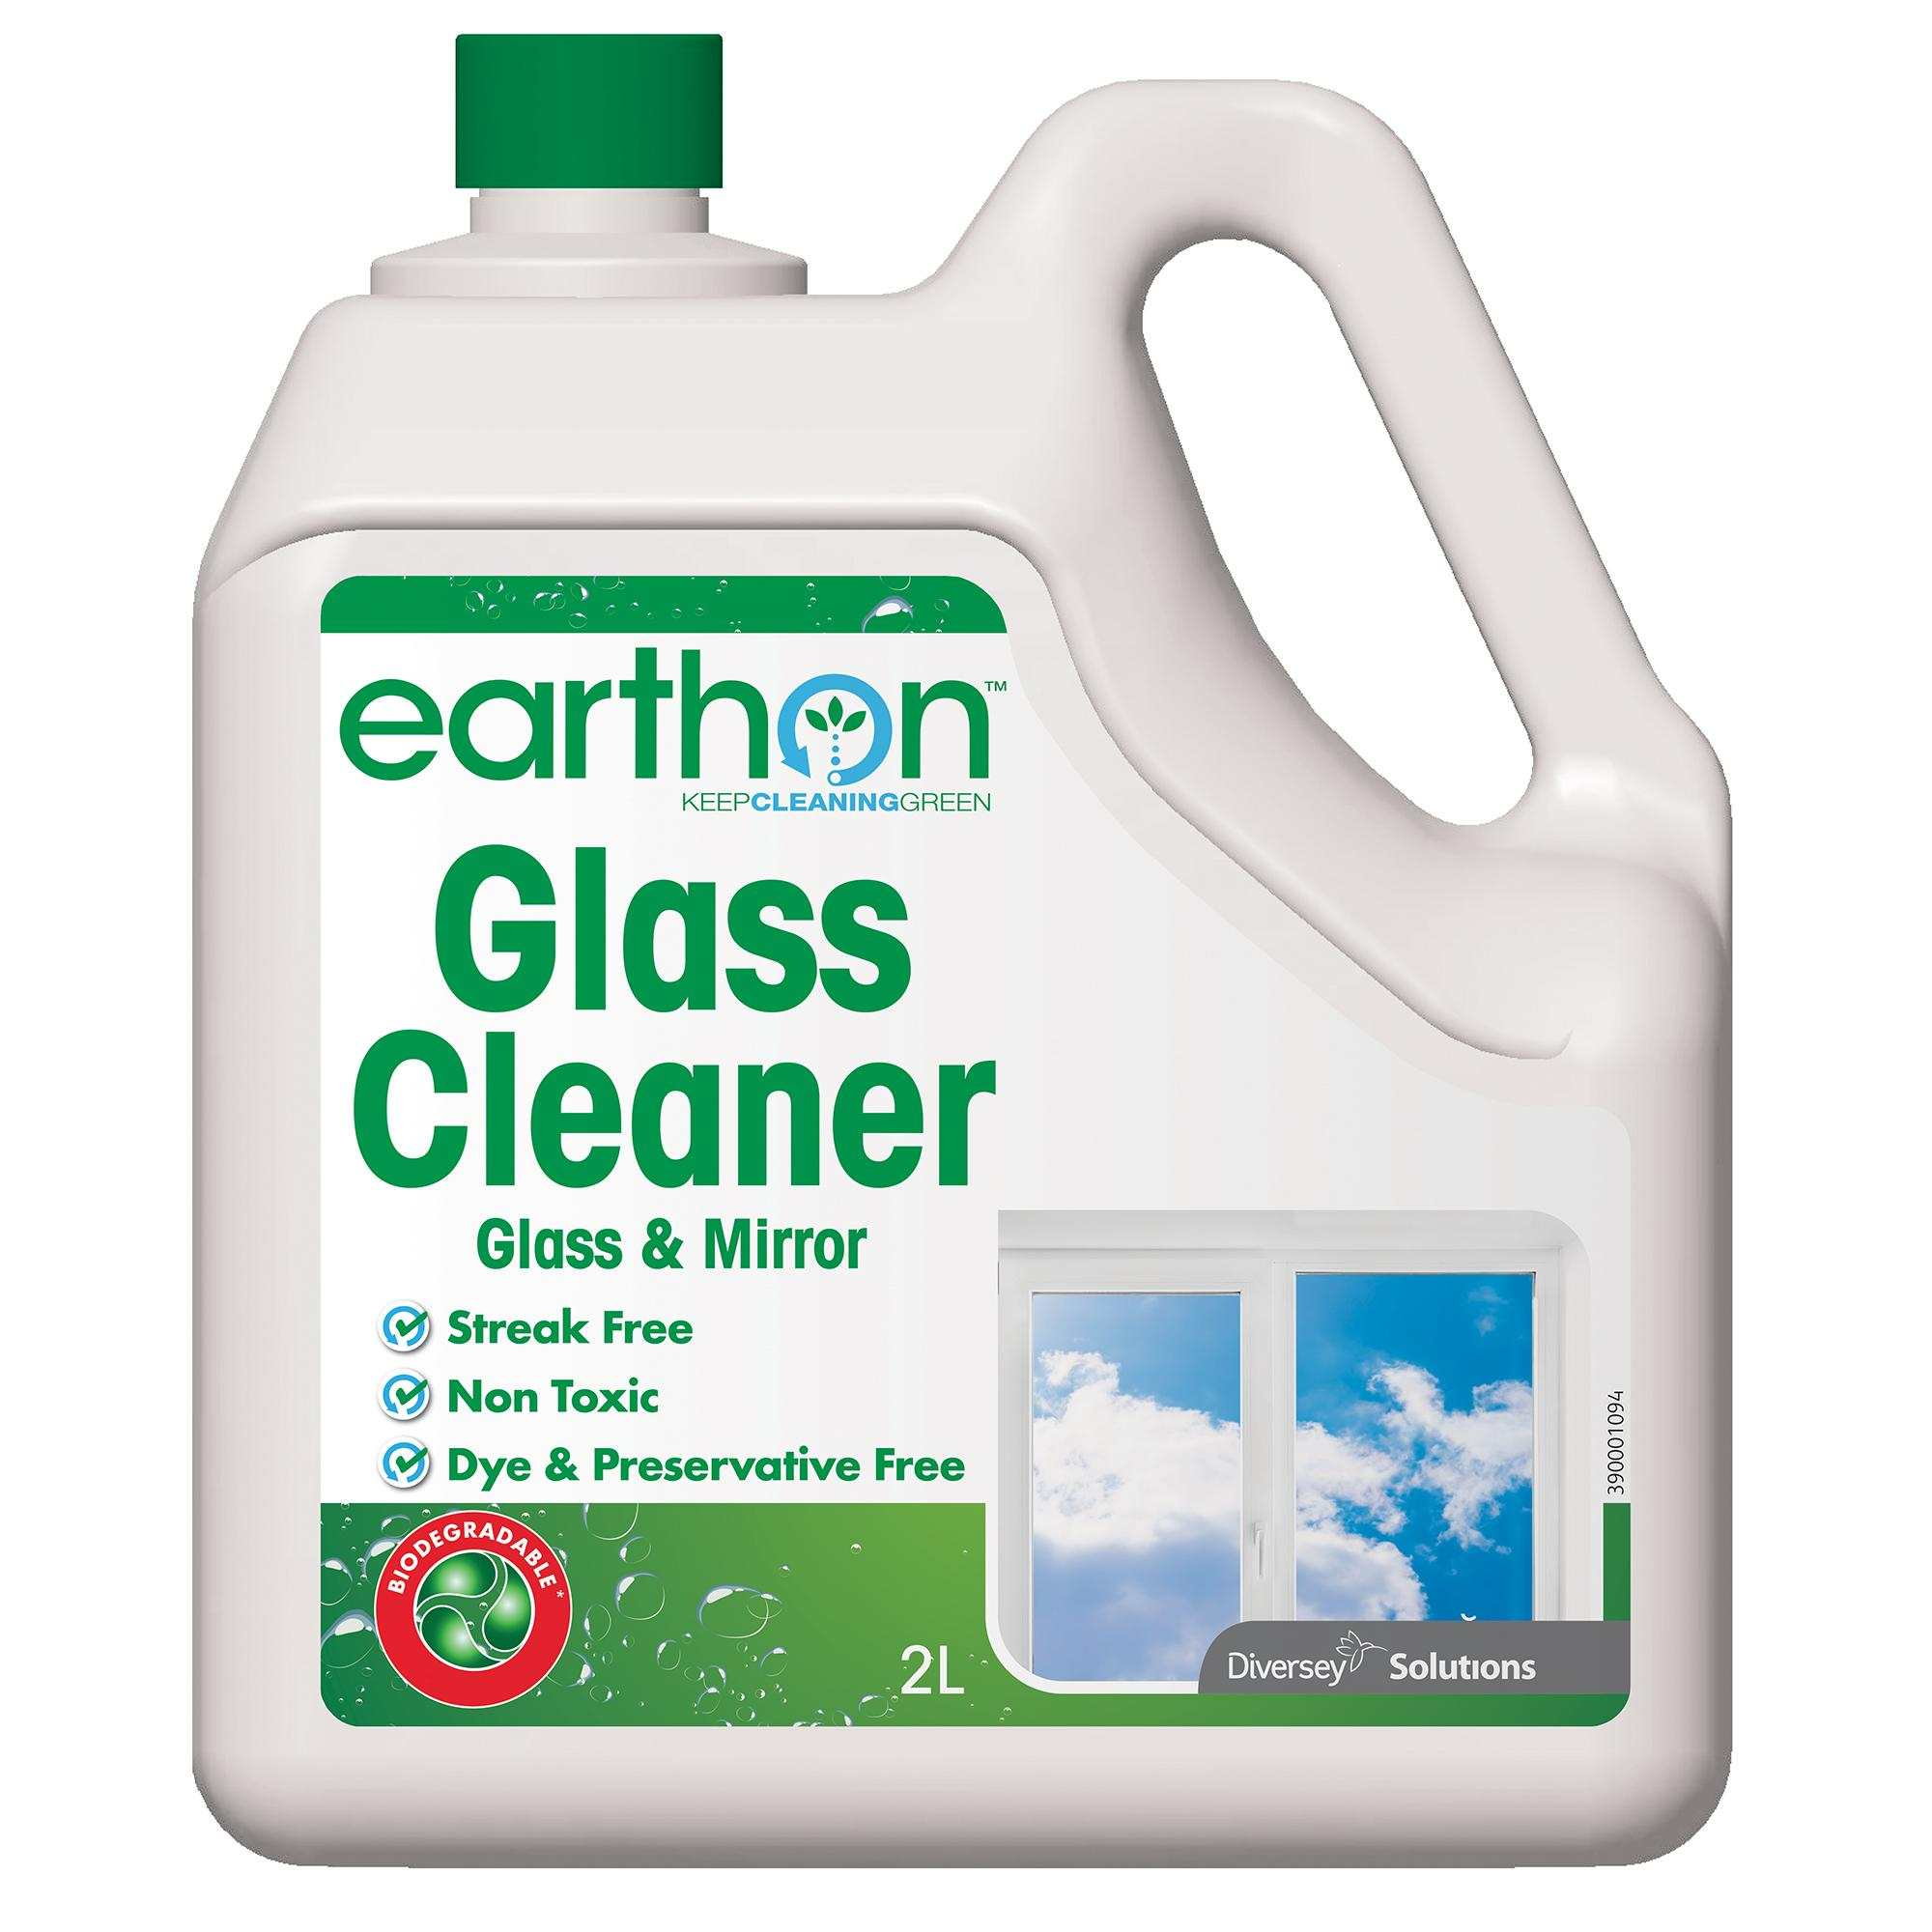 101103631%20Earthon%20_%20Glass%20Cleaner%20_%202L%202000x2000px